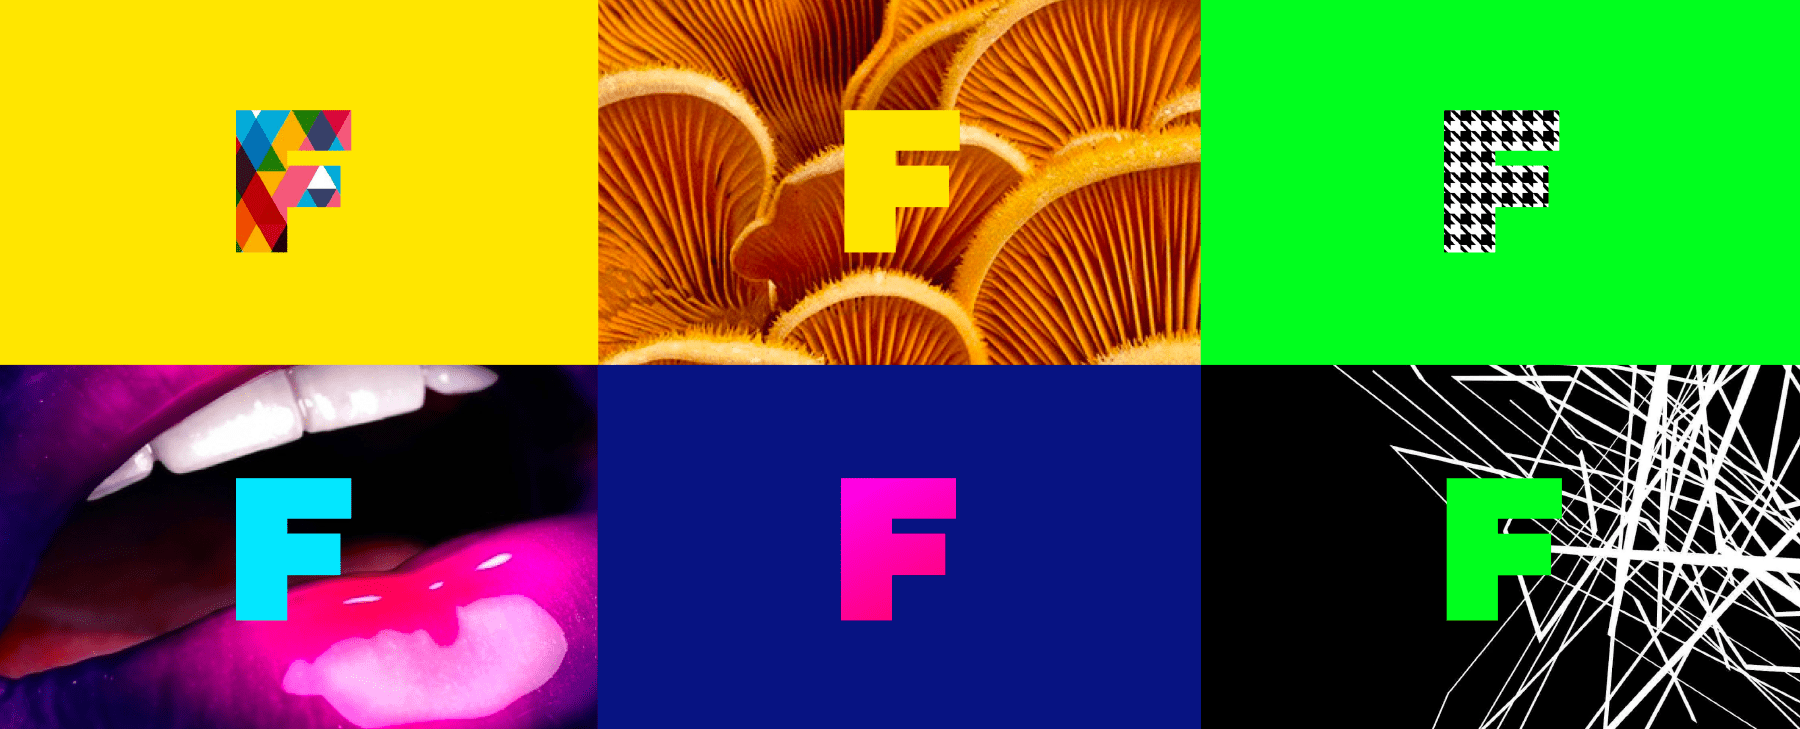 FEED F logo on pattern backgrounds